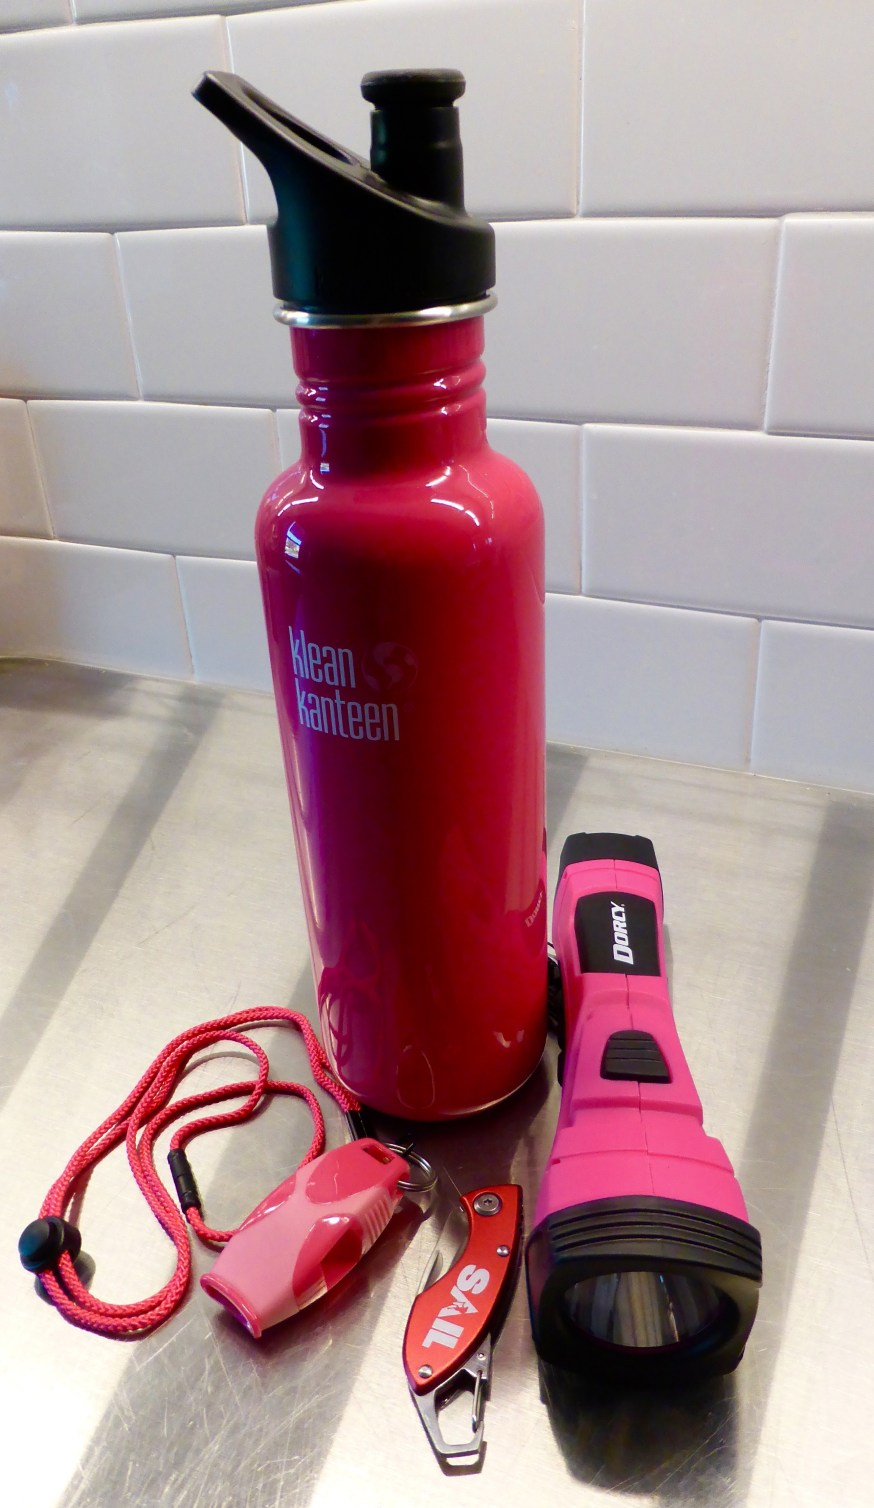 Kayaking and hiking gear, colour-coordinated to go with Floyd the Pink Kayak. From Miztah K and Mizz C. So damn nice!!!